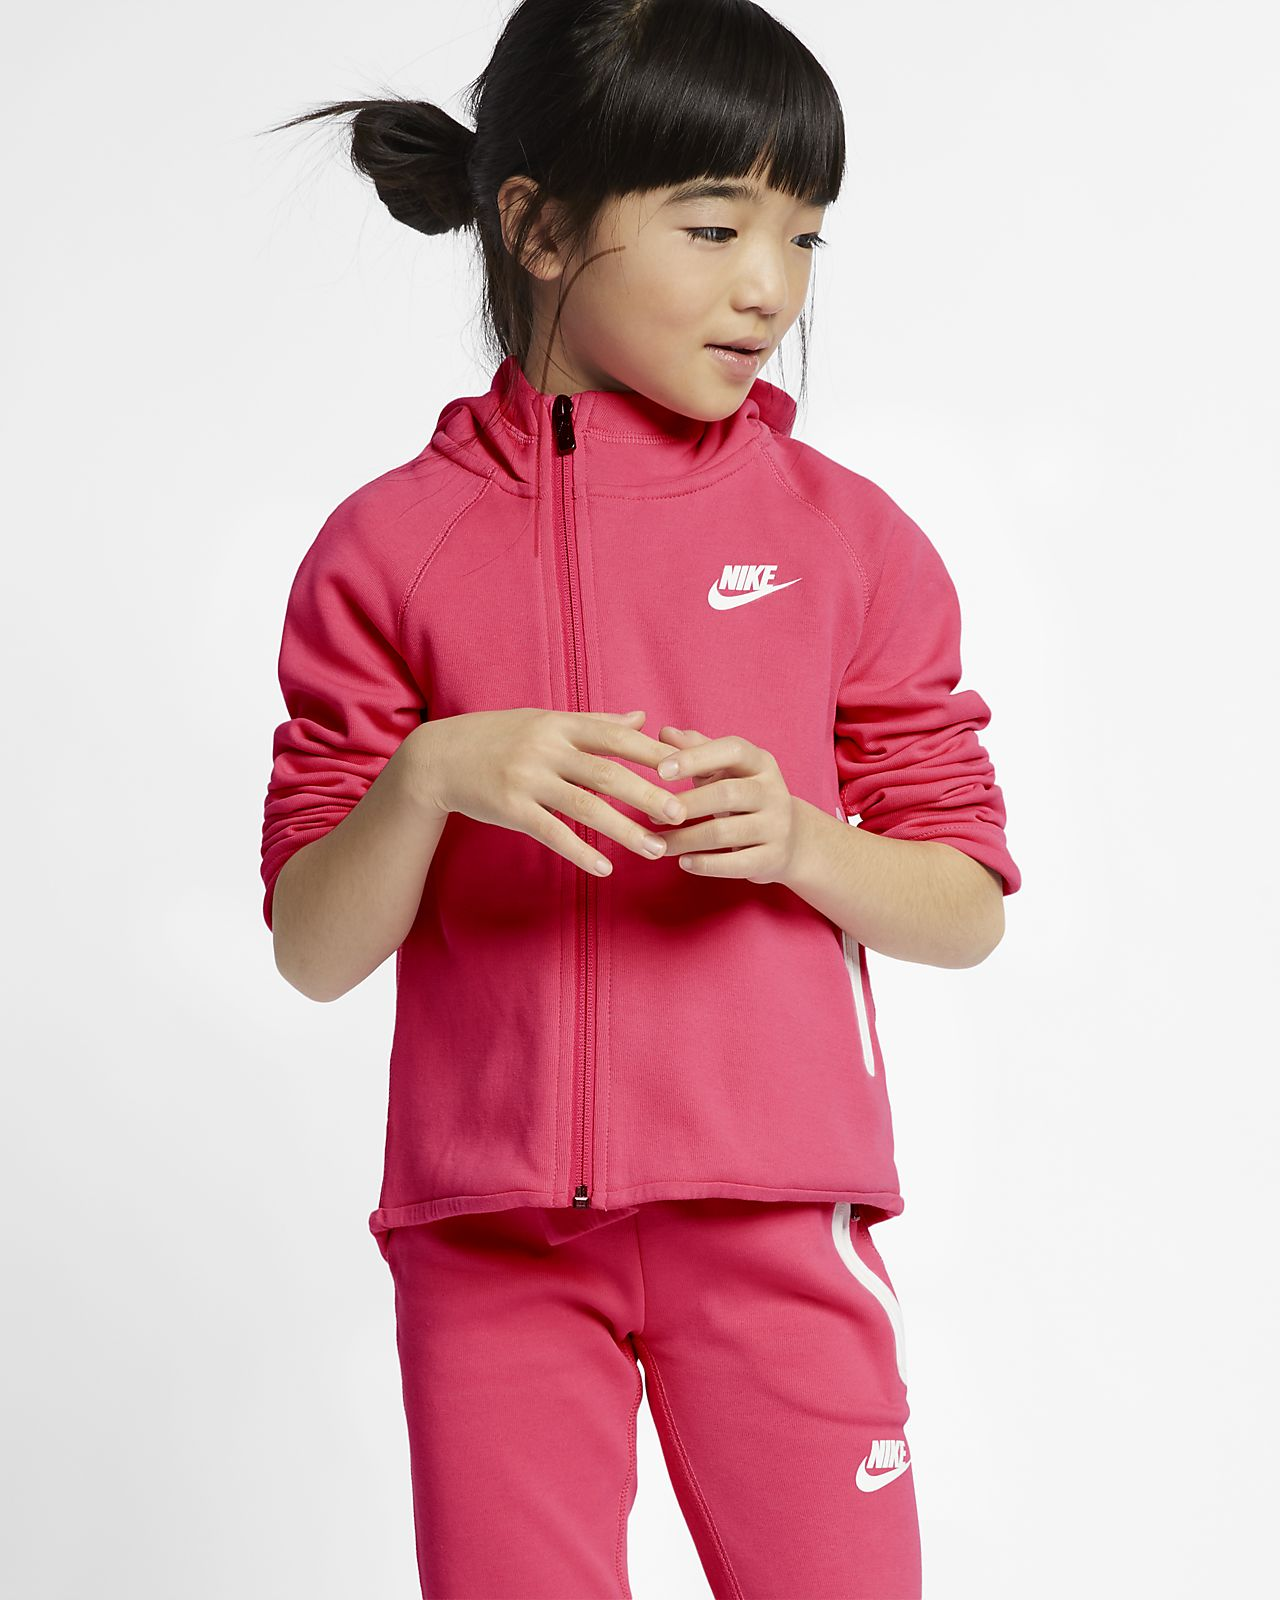 Nike Sportswear Tech Fleece Little Kids' Hoodie